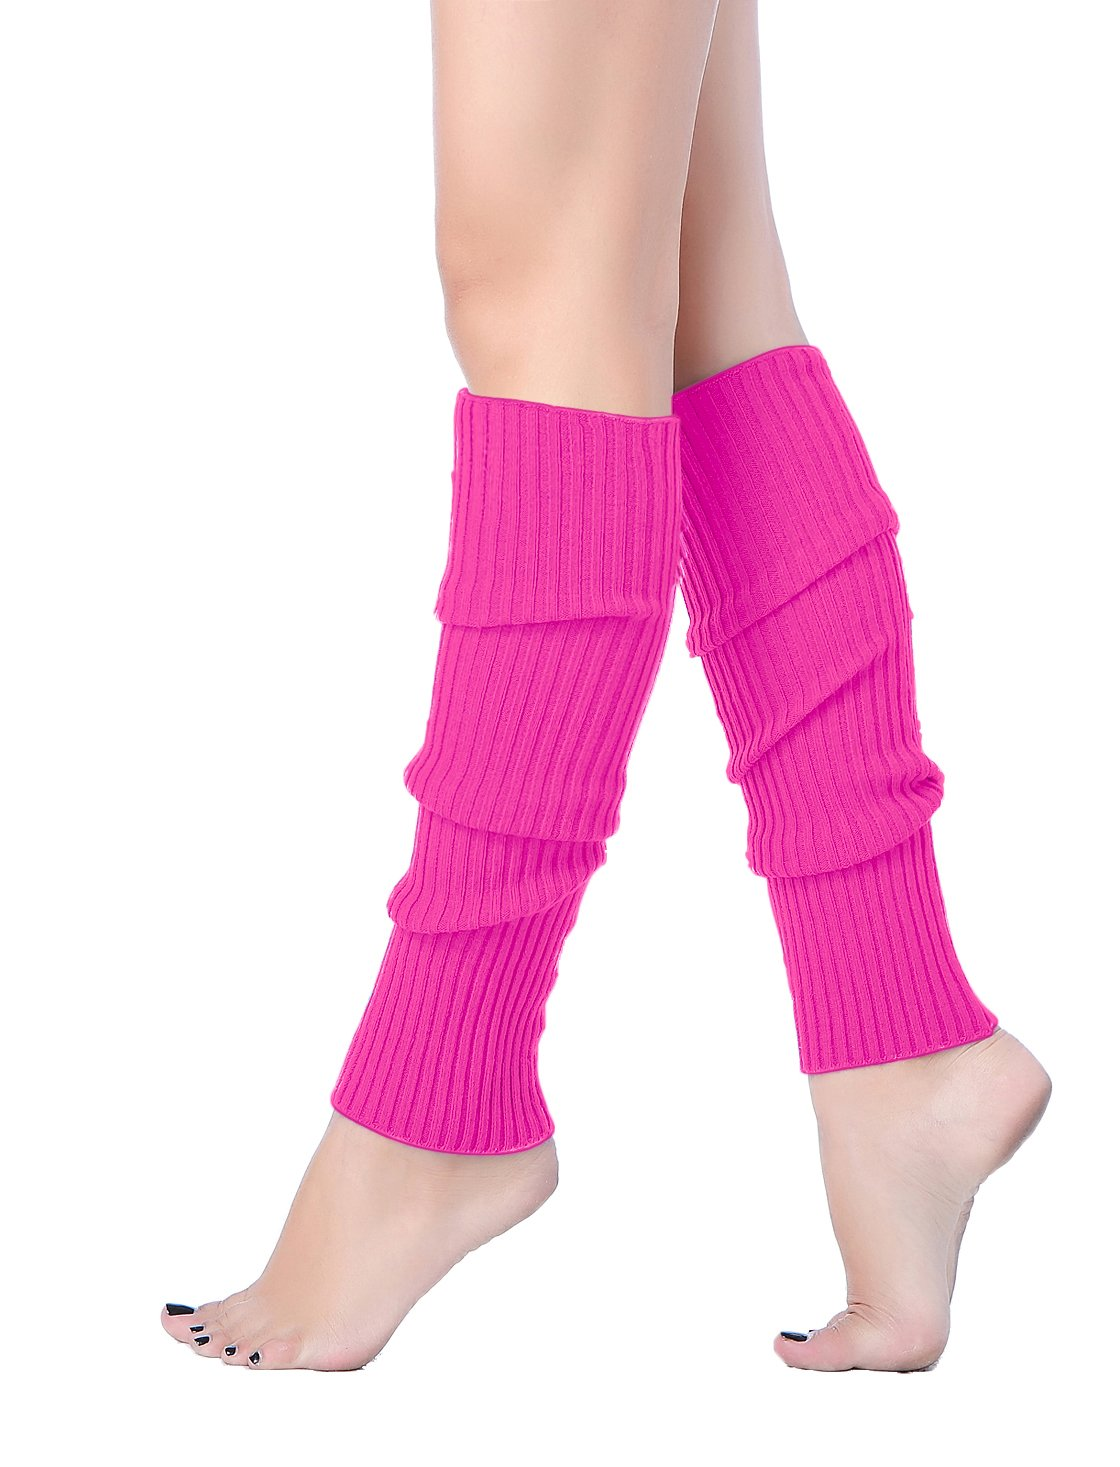 fbbeba663697a V28 Women Juniors 80s Eighty's Ribbed Leg Warmers for Party Sports